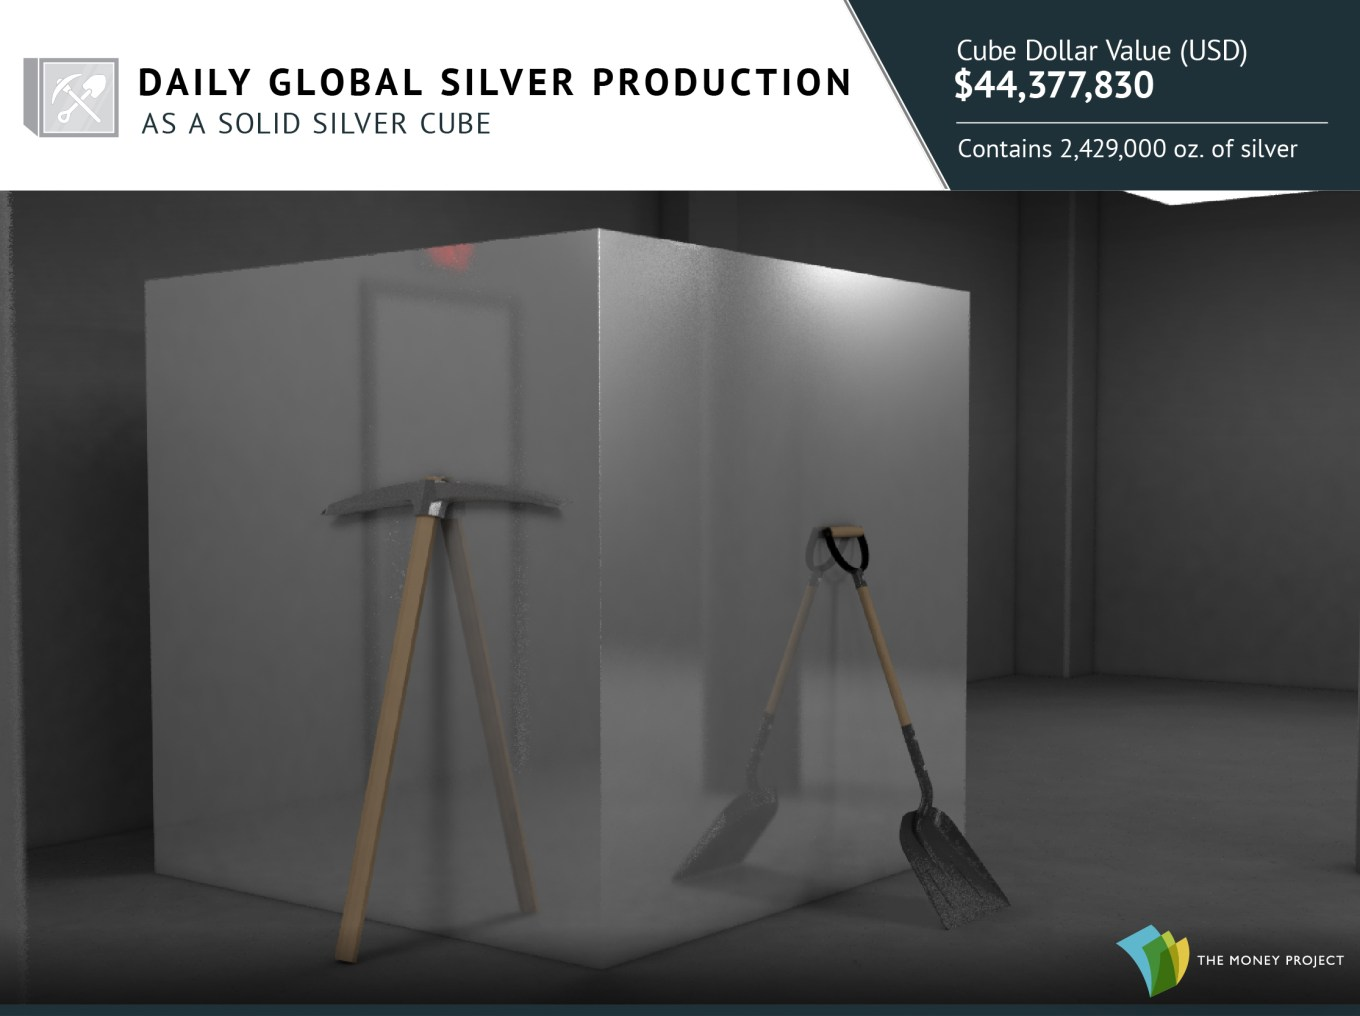 13 Stunning Visualizations of Silver Put Global Debt Into Perspective